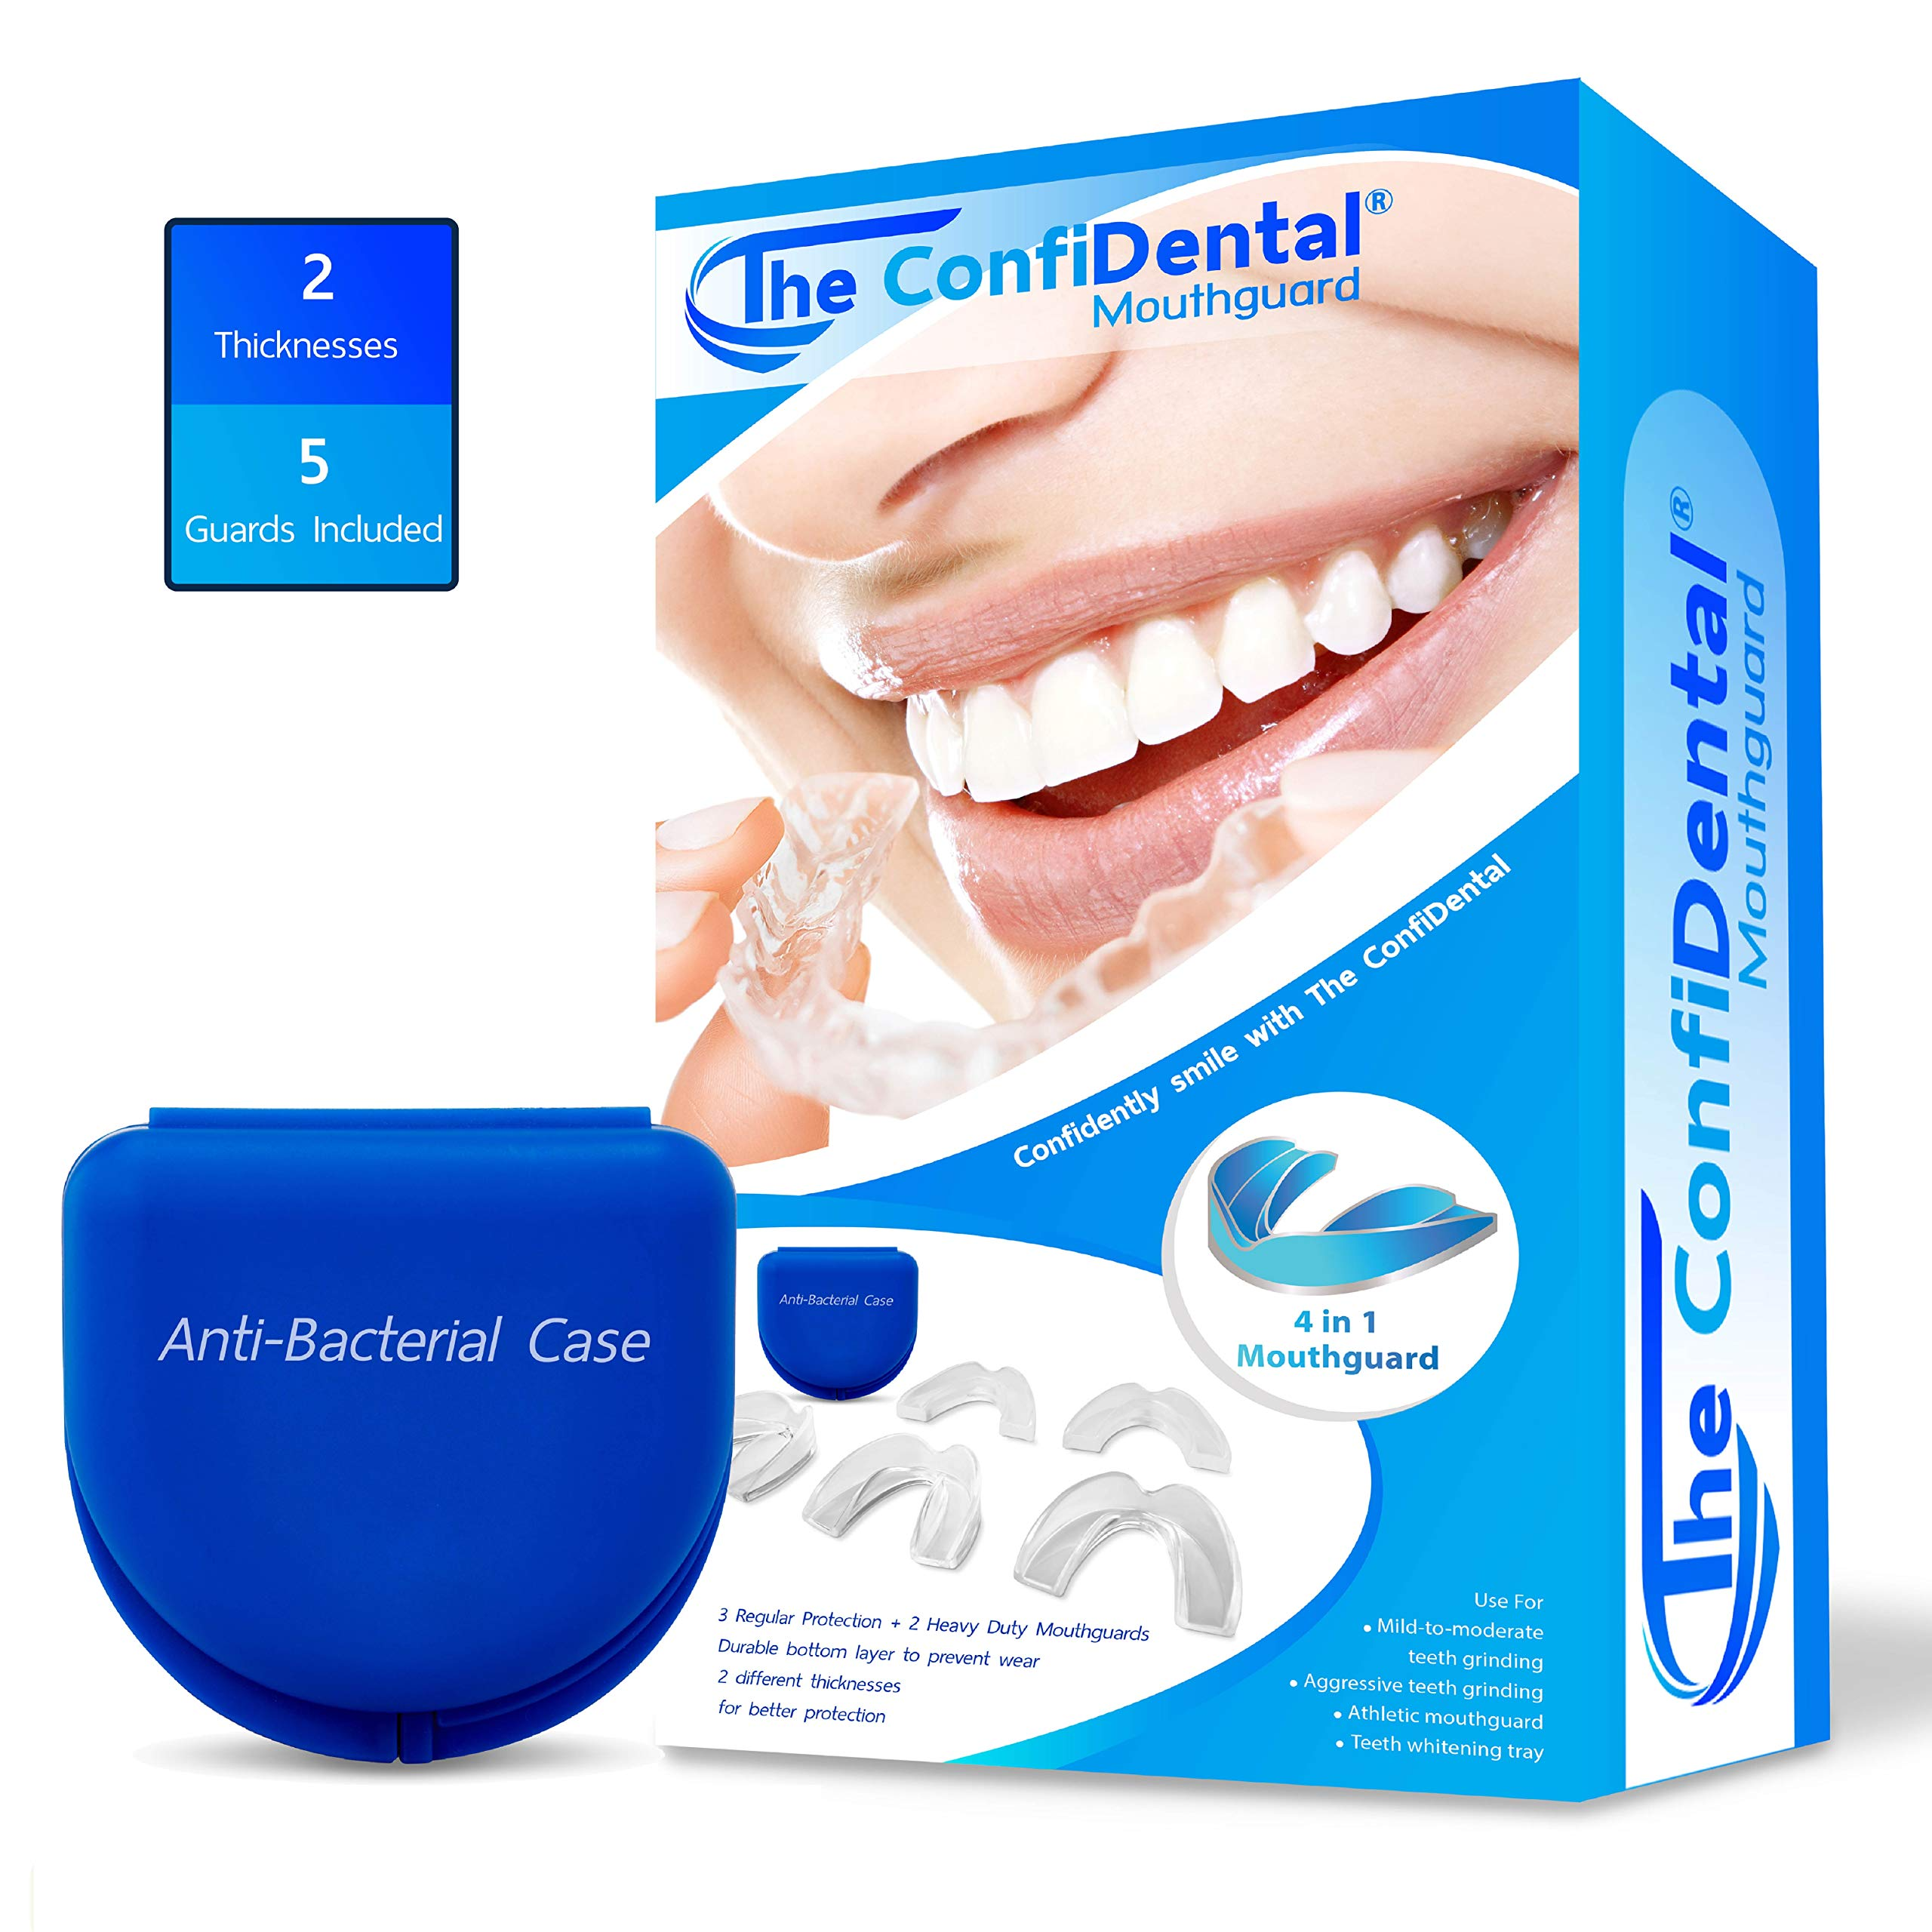 The ConfiDental – Pack of 5 Moldable Mouth Guard for Teeth Grinding Clenching Bruxism, Sport Athletic, Whitening Tray, Including 3 Regular and 2 Heavy Duty Guard (3 (lll) Regular 2 (II) Heavy Duty)